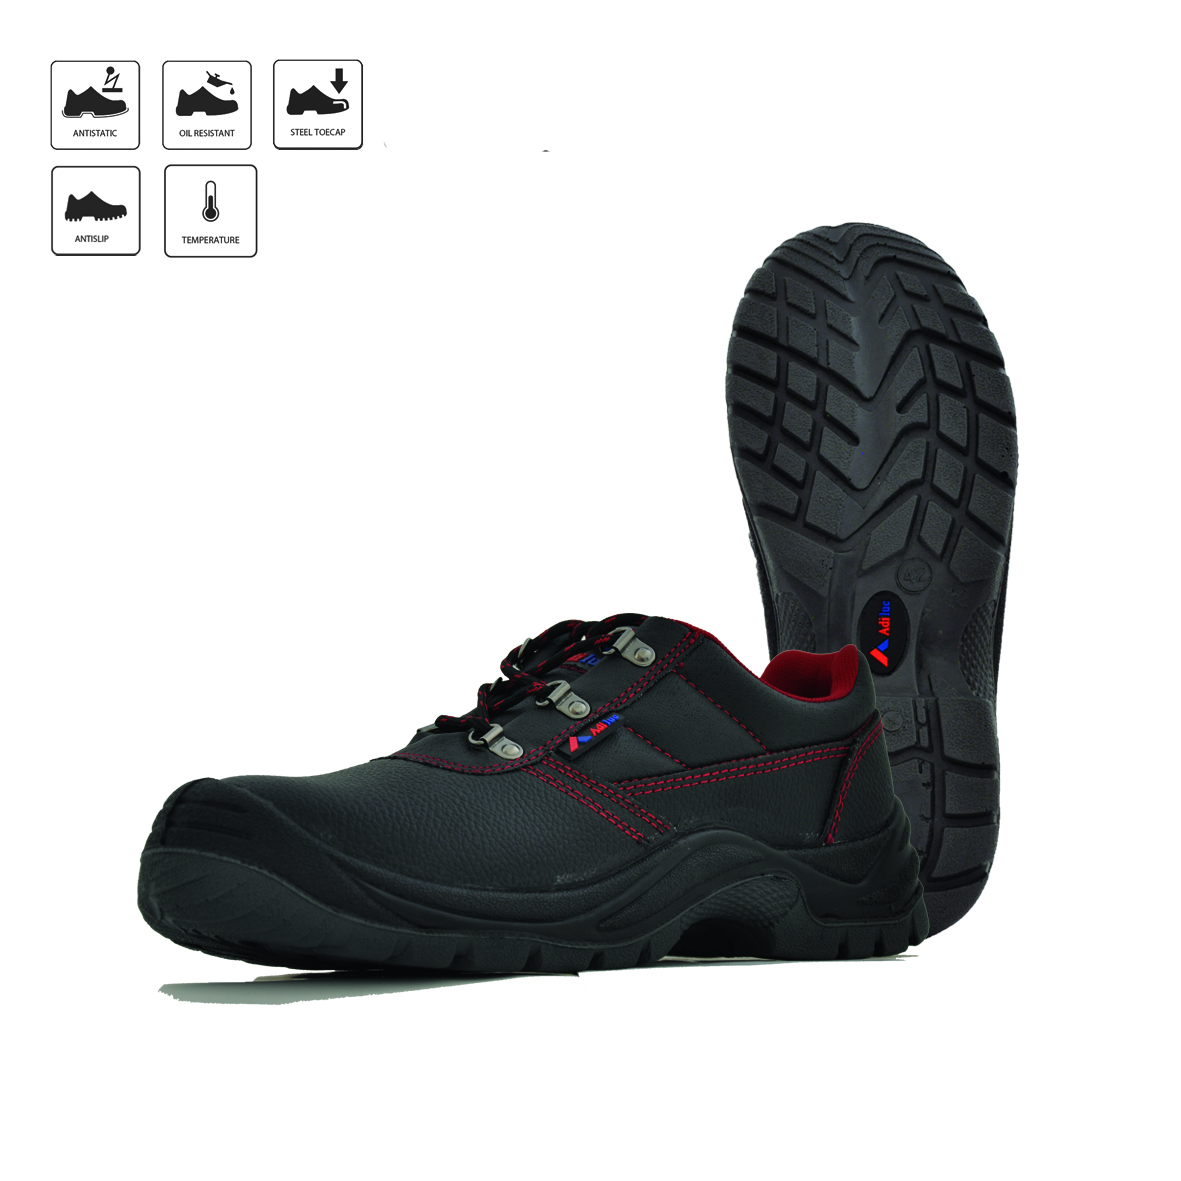 Adiluc Safety Shoes